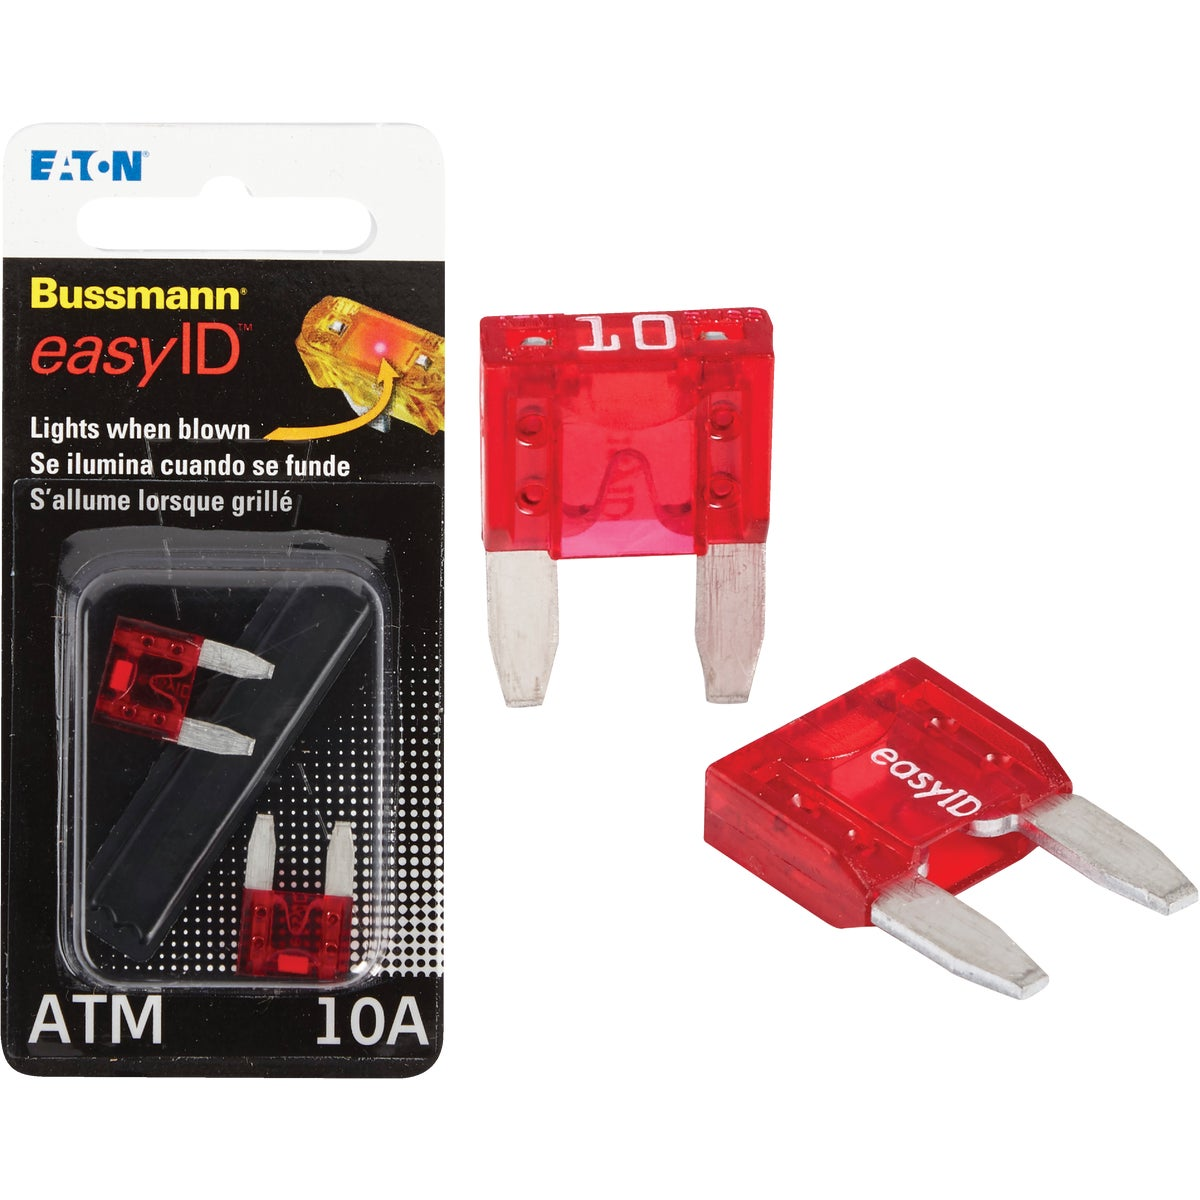 2PK 10A ATM EASY ID FUSE